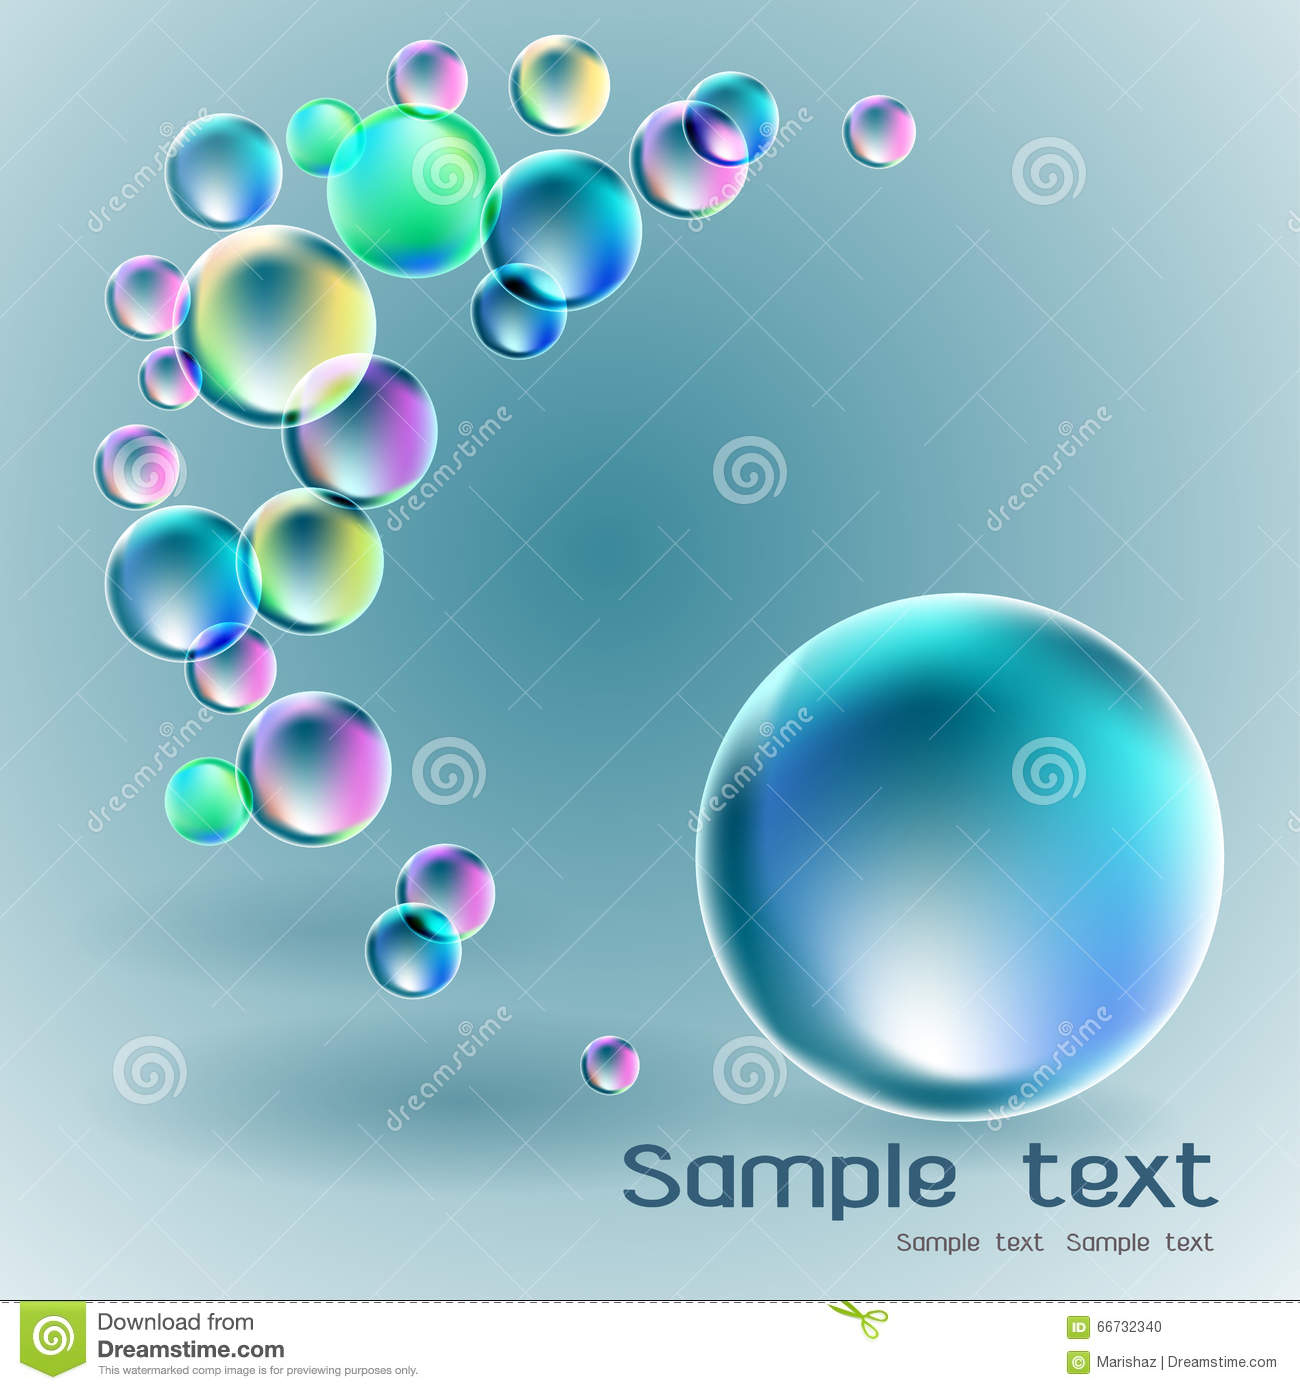 Soap bubble background download free vector art stock graphics - Royalty Free Vector Advertisement Background Banner Soap